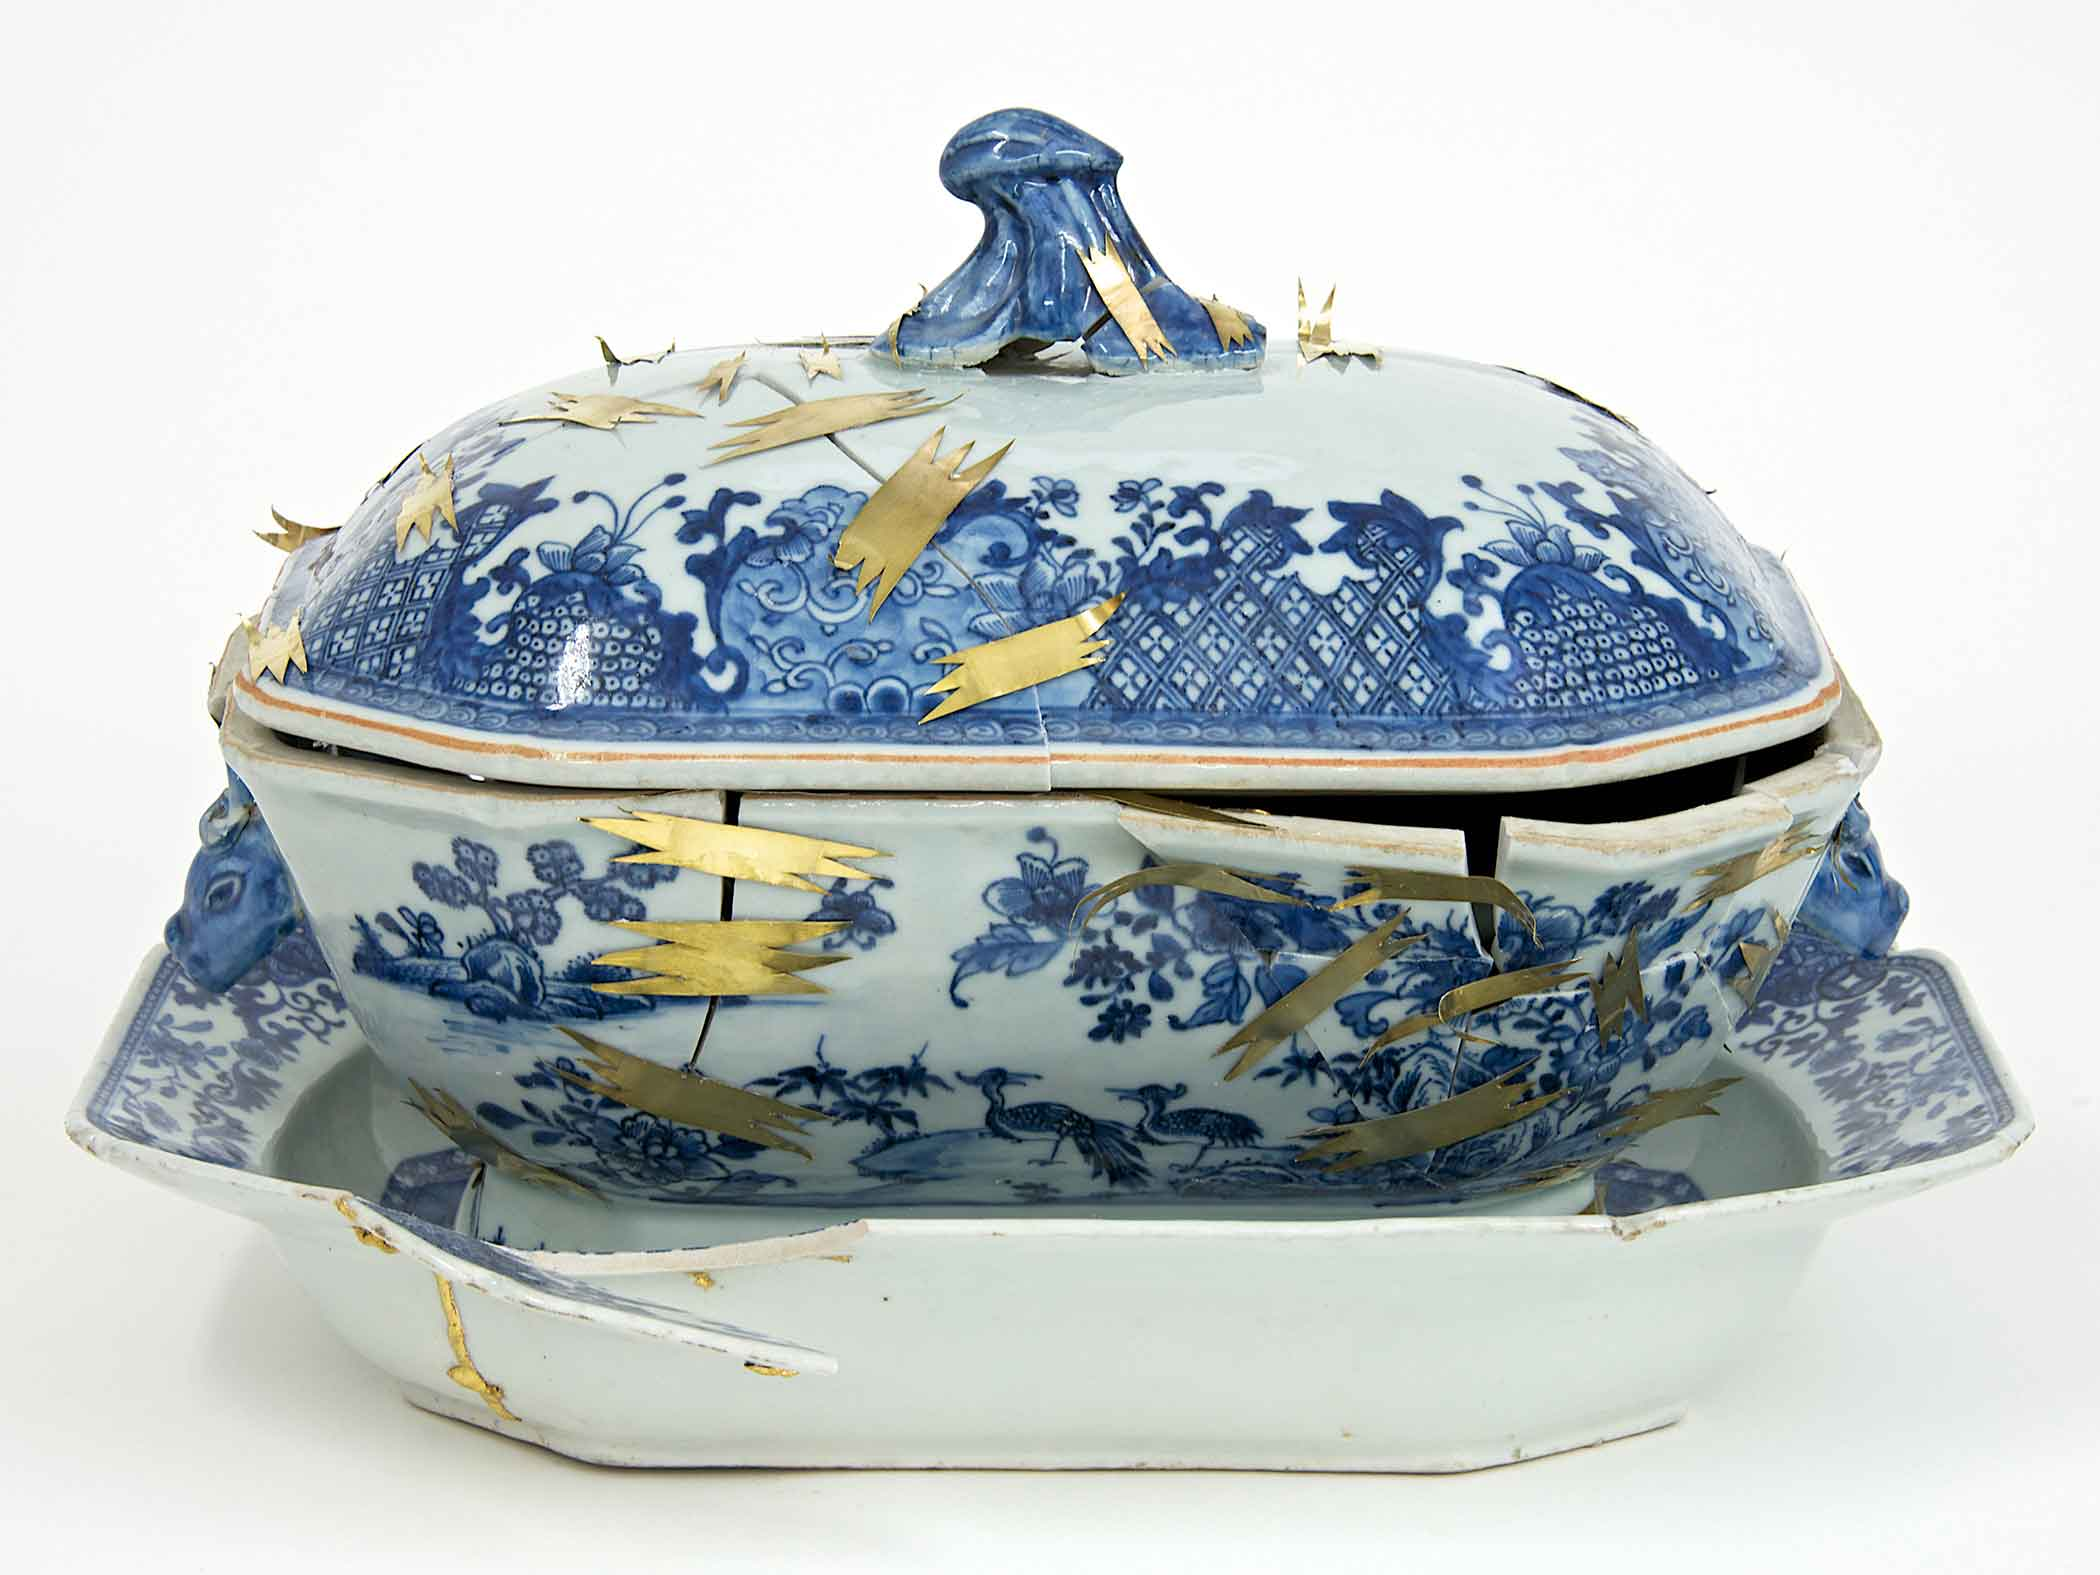 Bouke de Vries. The Repair II, 2014. 14 x 10.5 x 10 in. 18th century Chinese porcelain tureen stand and cover, and mixed media.